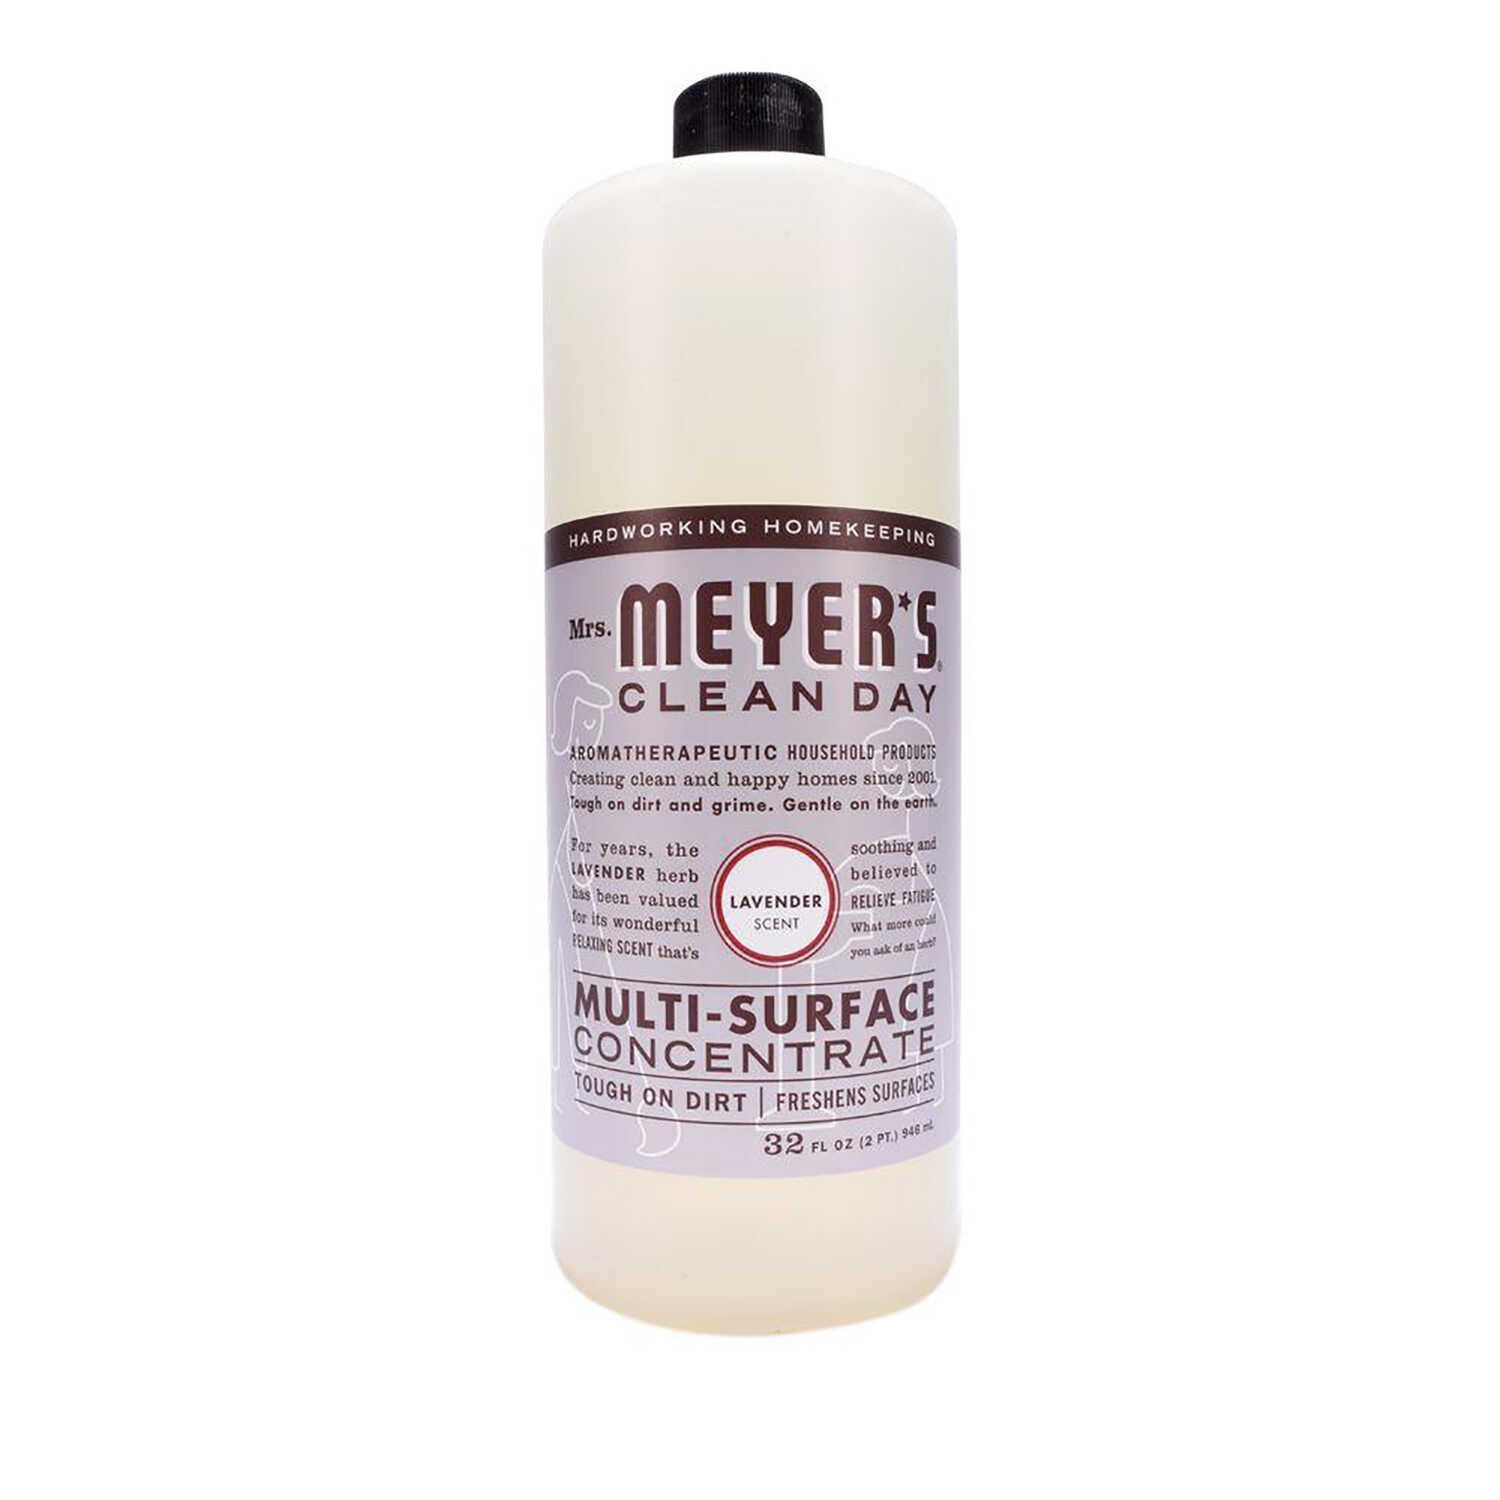 Mrs. Meyer's  Lavender Scent Concentrated Organic Multi-Surface Cleaner, Protector and Deodorizer  L